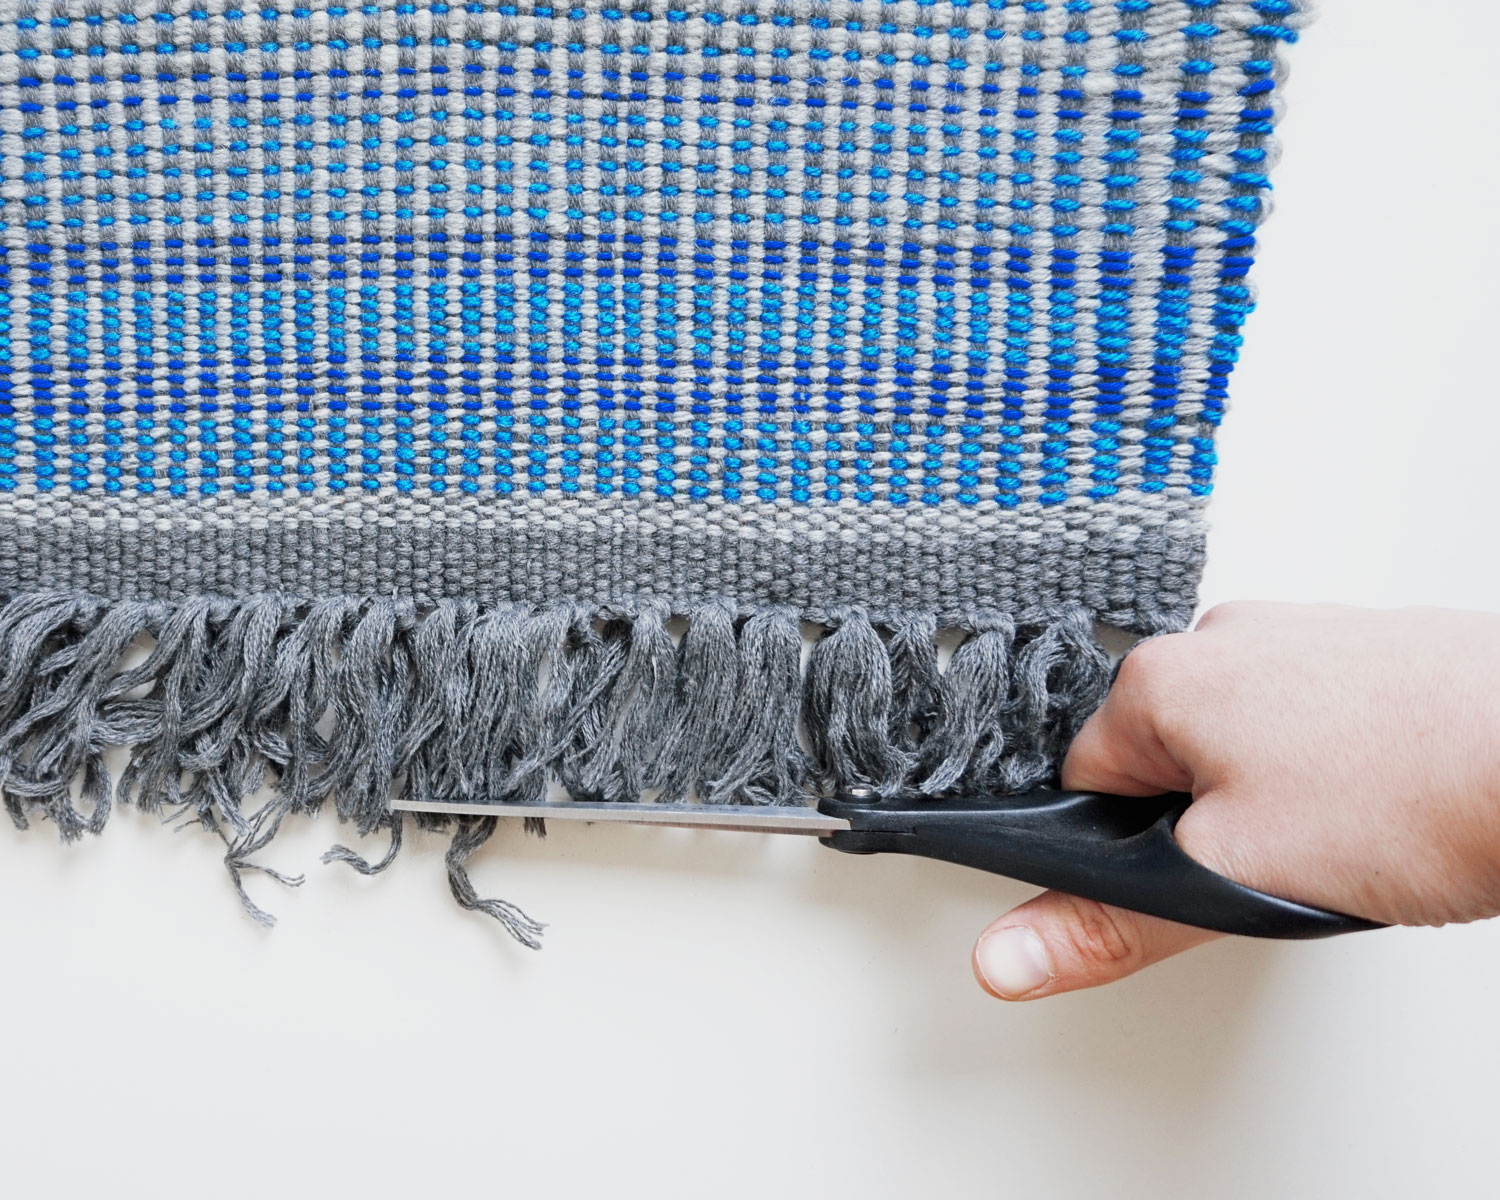 Image of a hand with scissors cutting the fringe of a woven piece of fabric